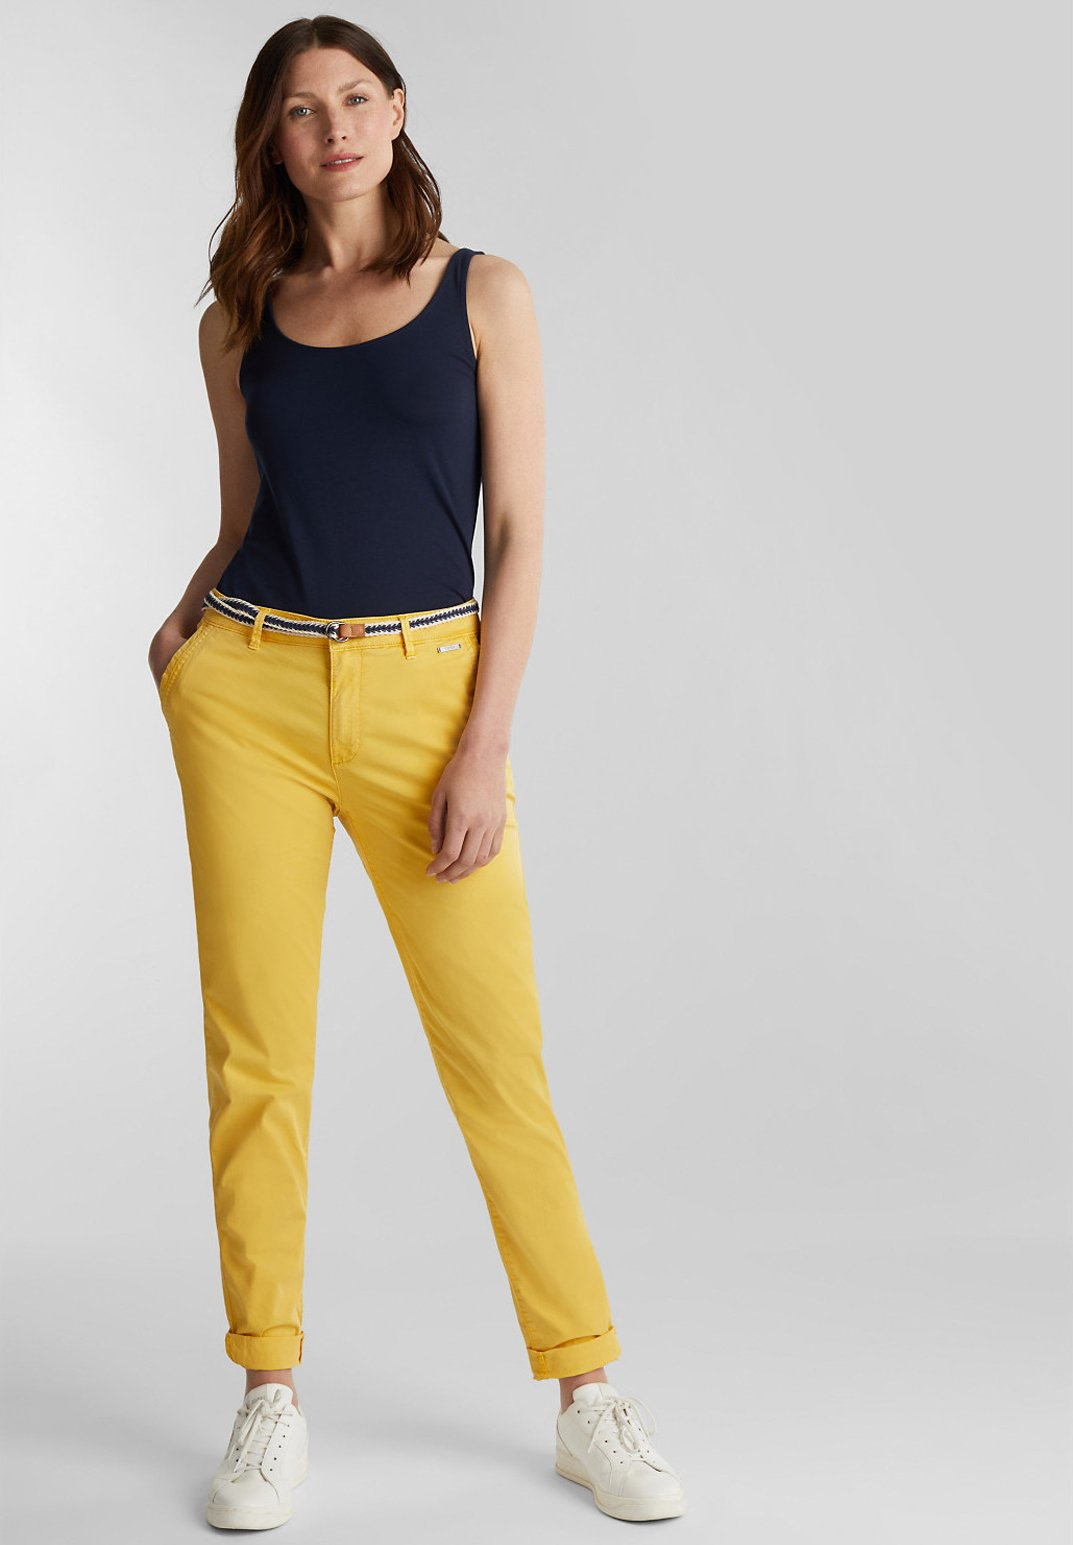 Chinos femme Taille 46 | Tous les articles